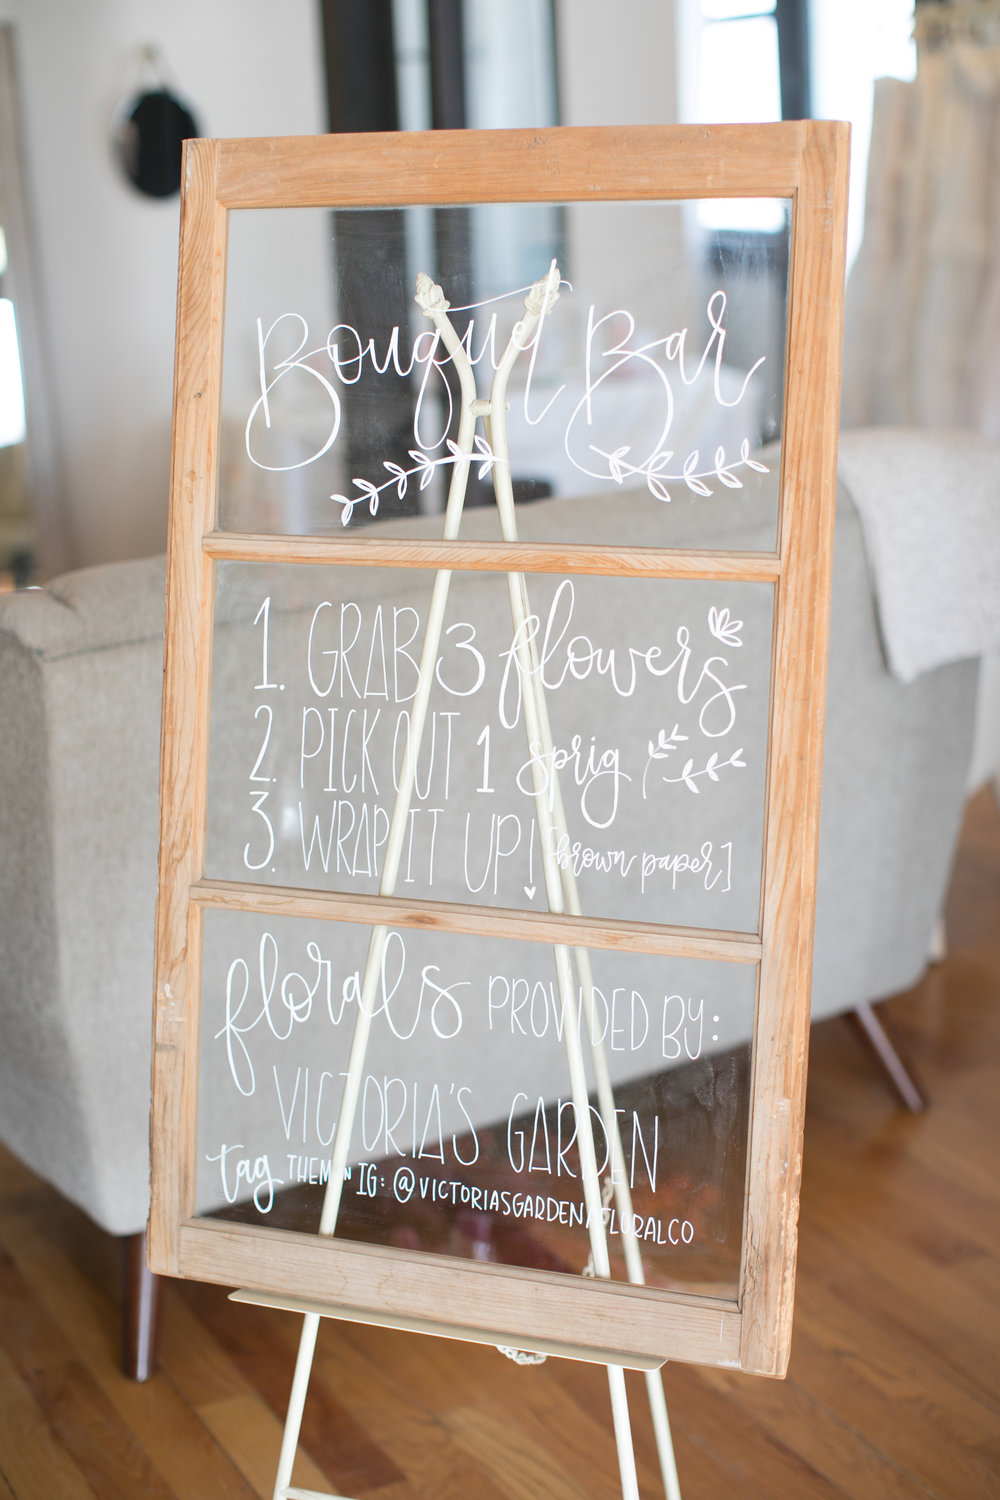 bouquet bar sign